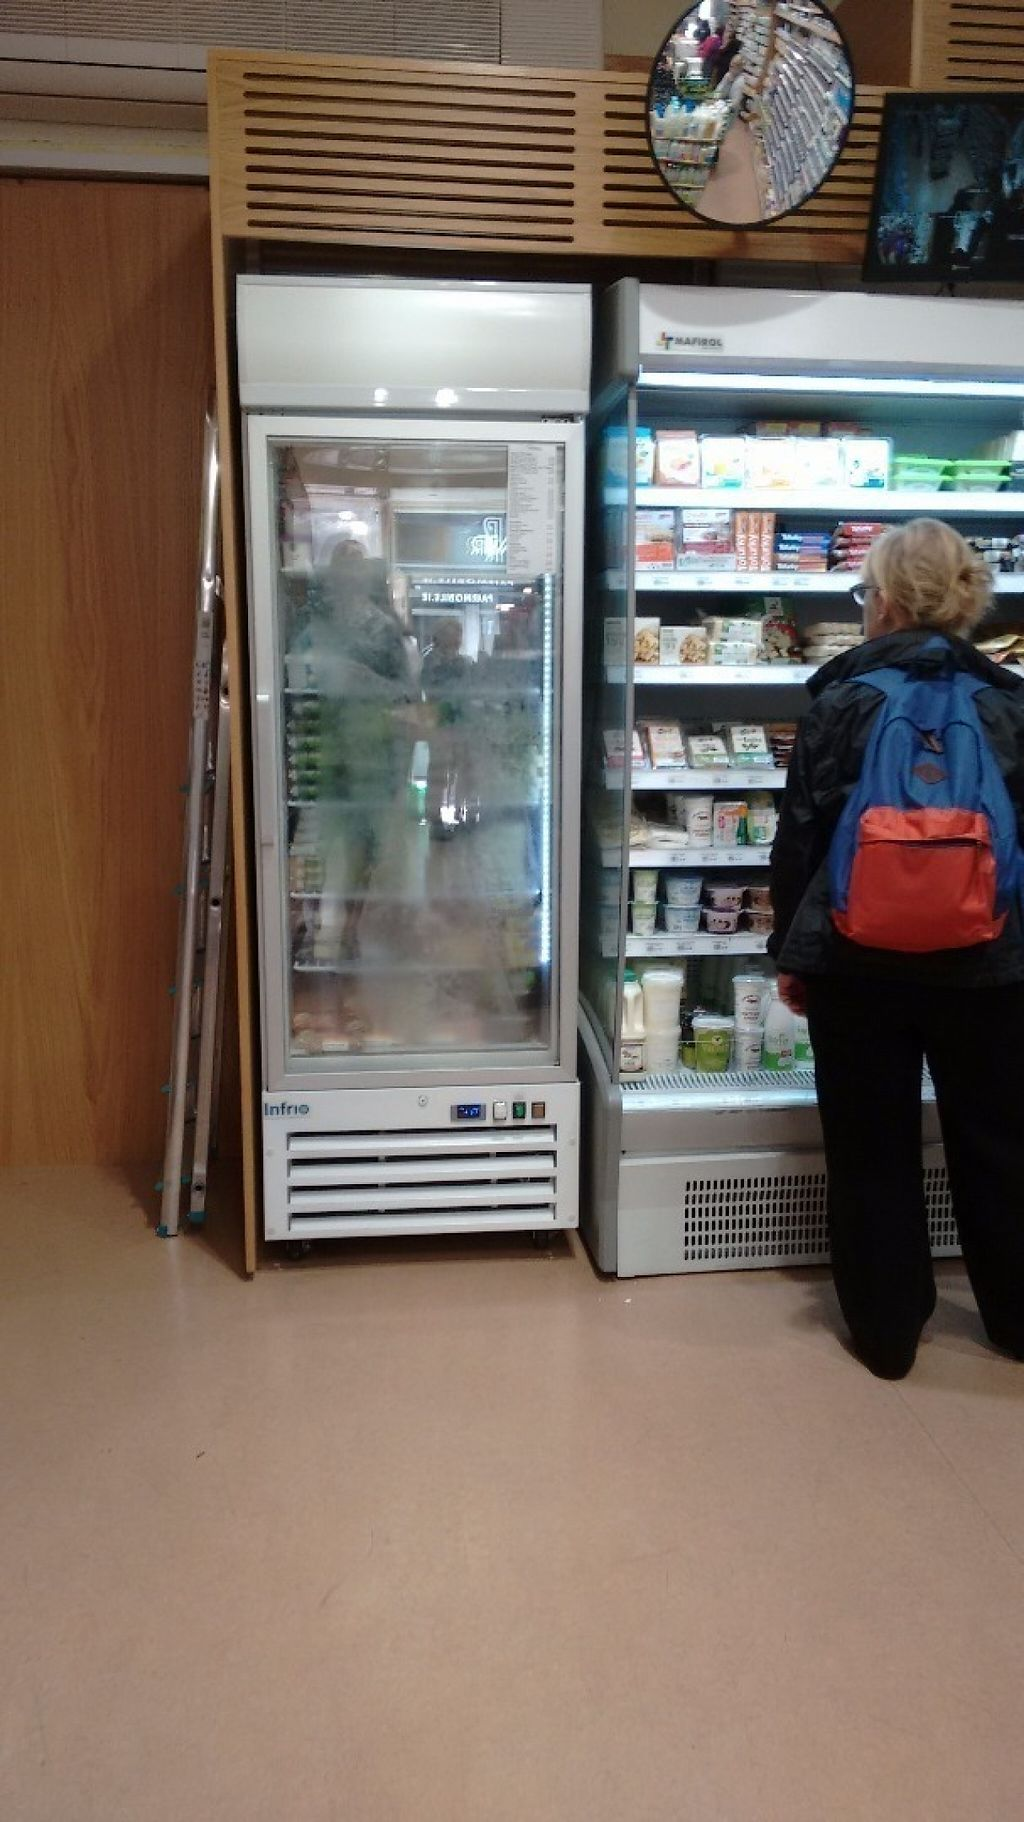 """Photo of Nourish - Wicklow Street  by <a href=""""/members/profile/craigmc"""">craigmc</a> <br/>Fridge and small frozen section <br/> August 19, 2016  - <a href='/contact/abuse/image/12471/170033'>Report</a>"""